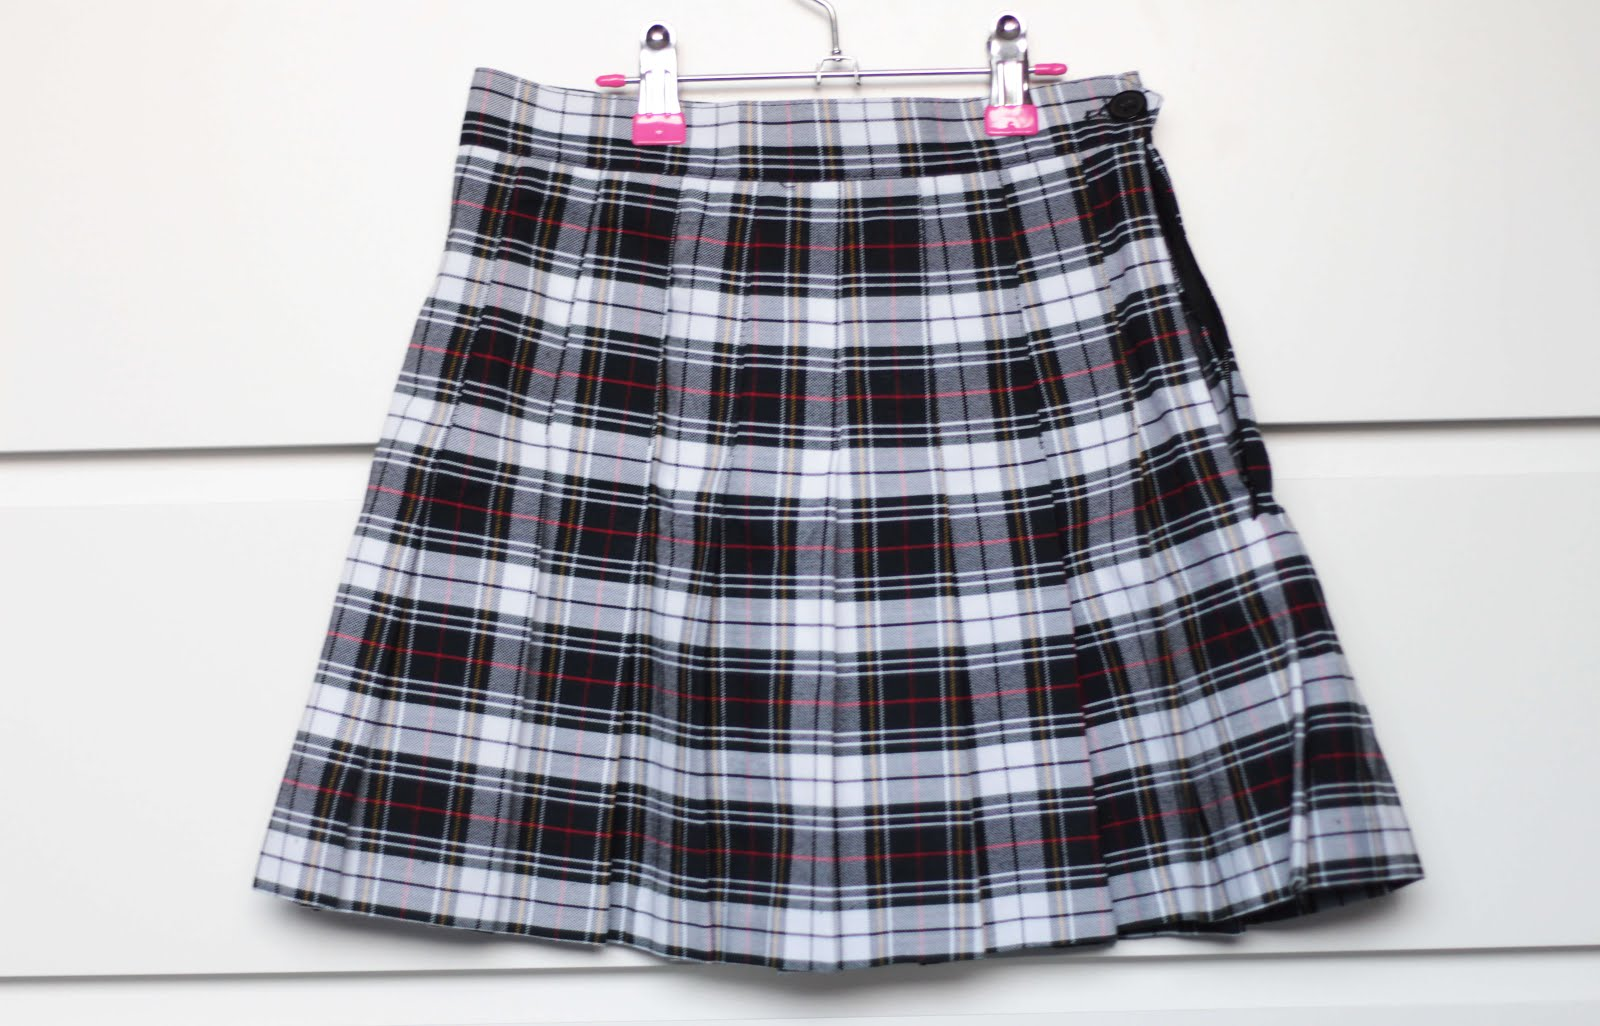 american apparel uk black check tennis skirt